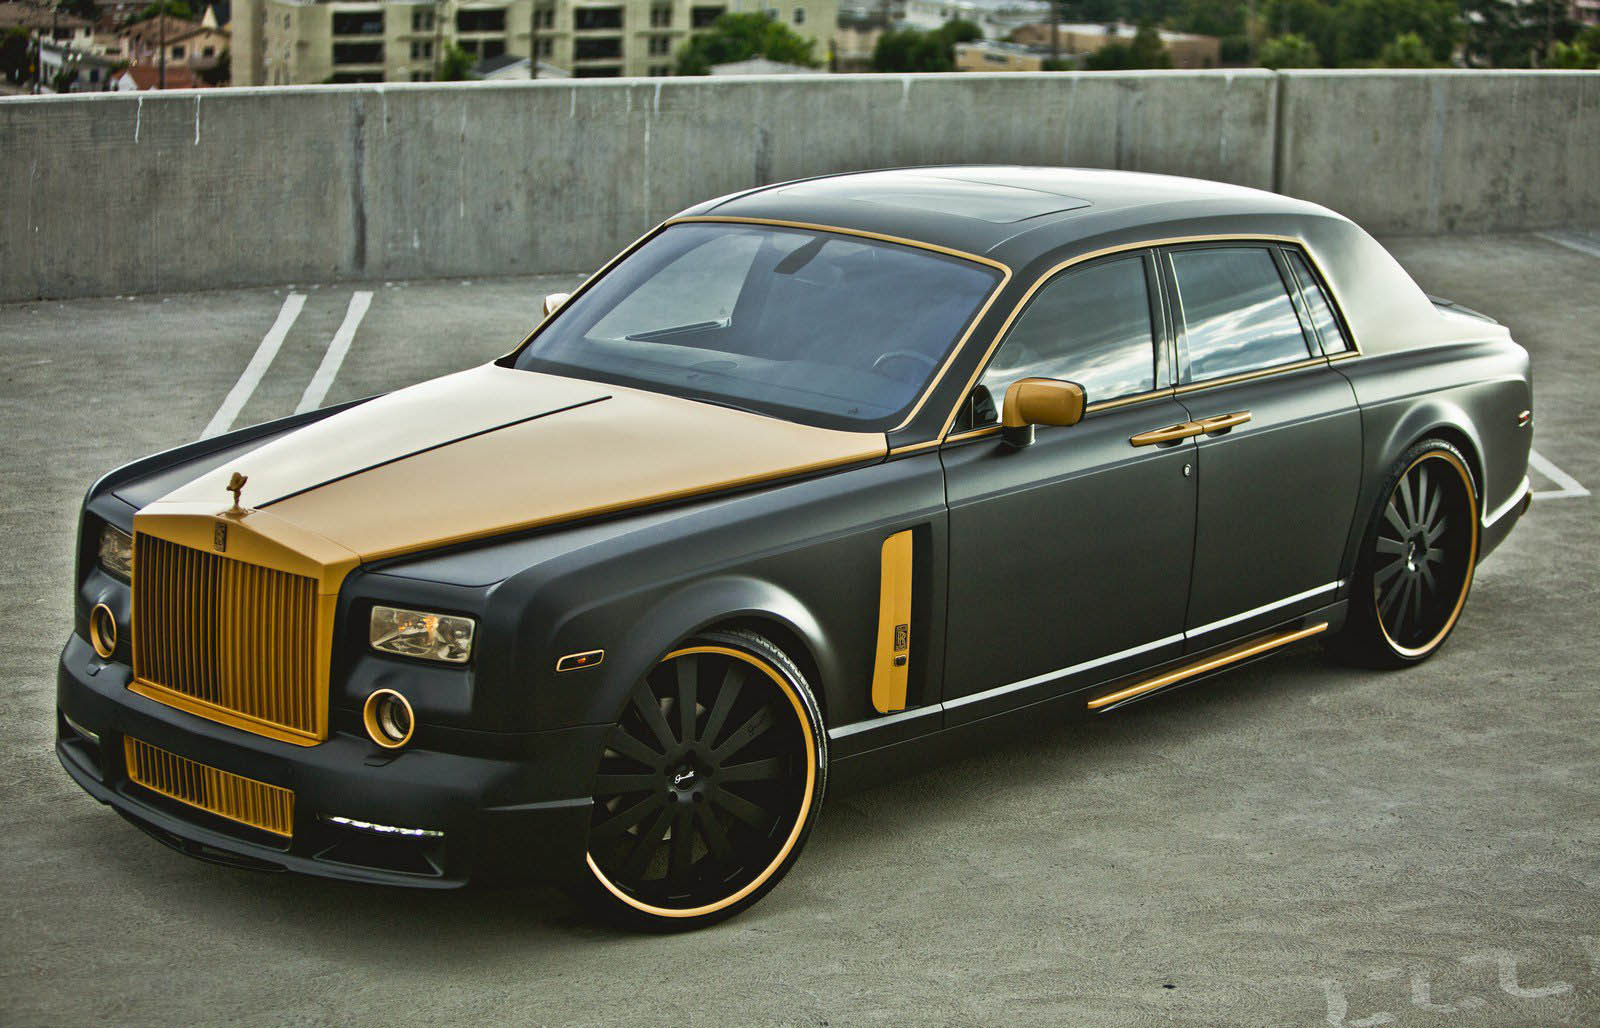 Rolls-Royce Phantom I: 9 фото